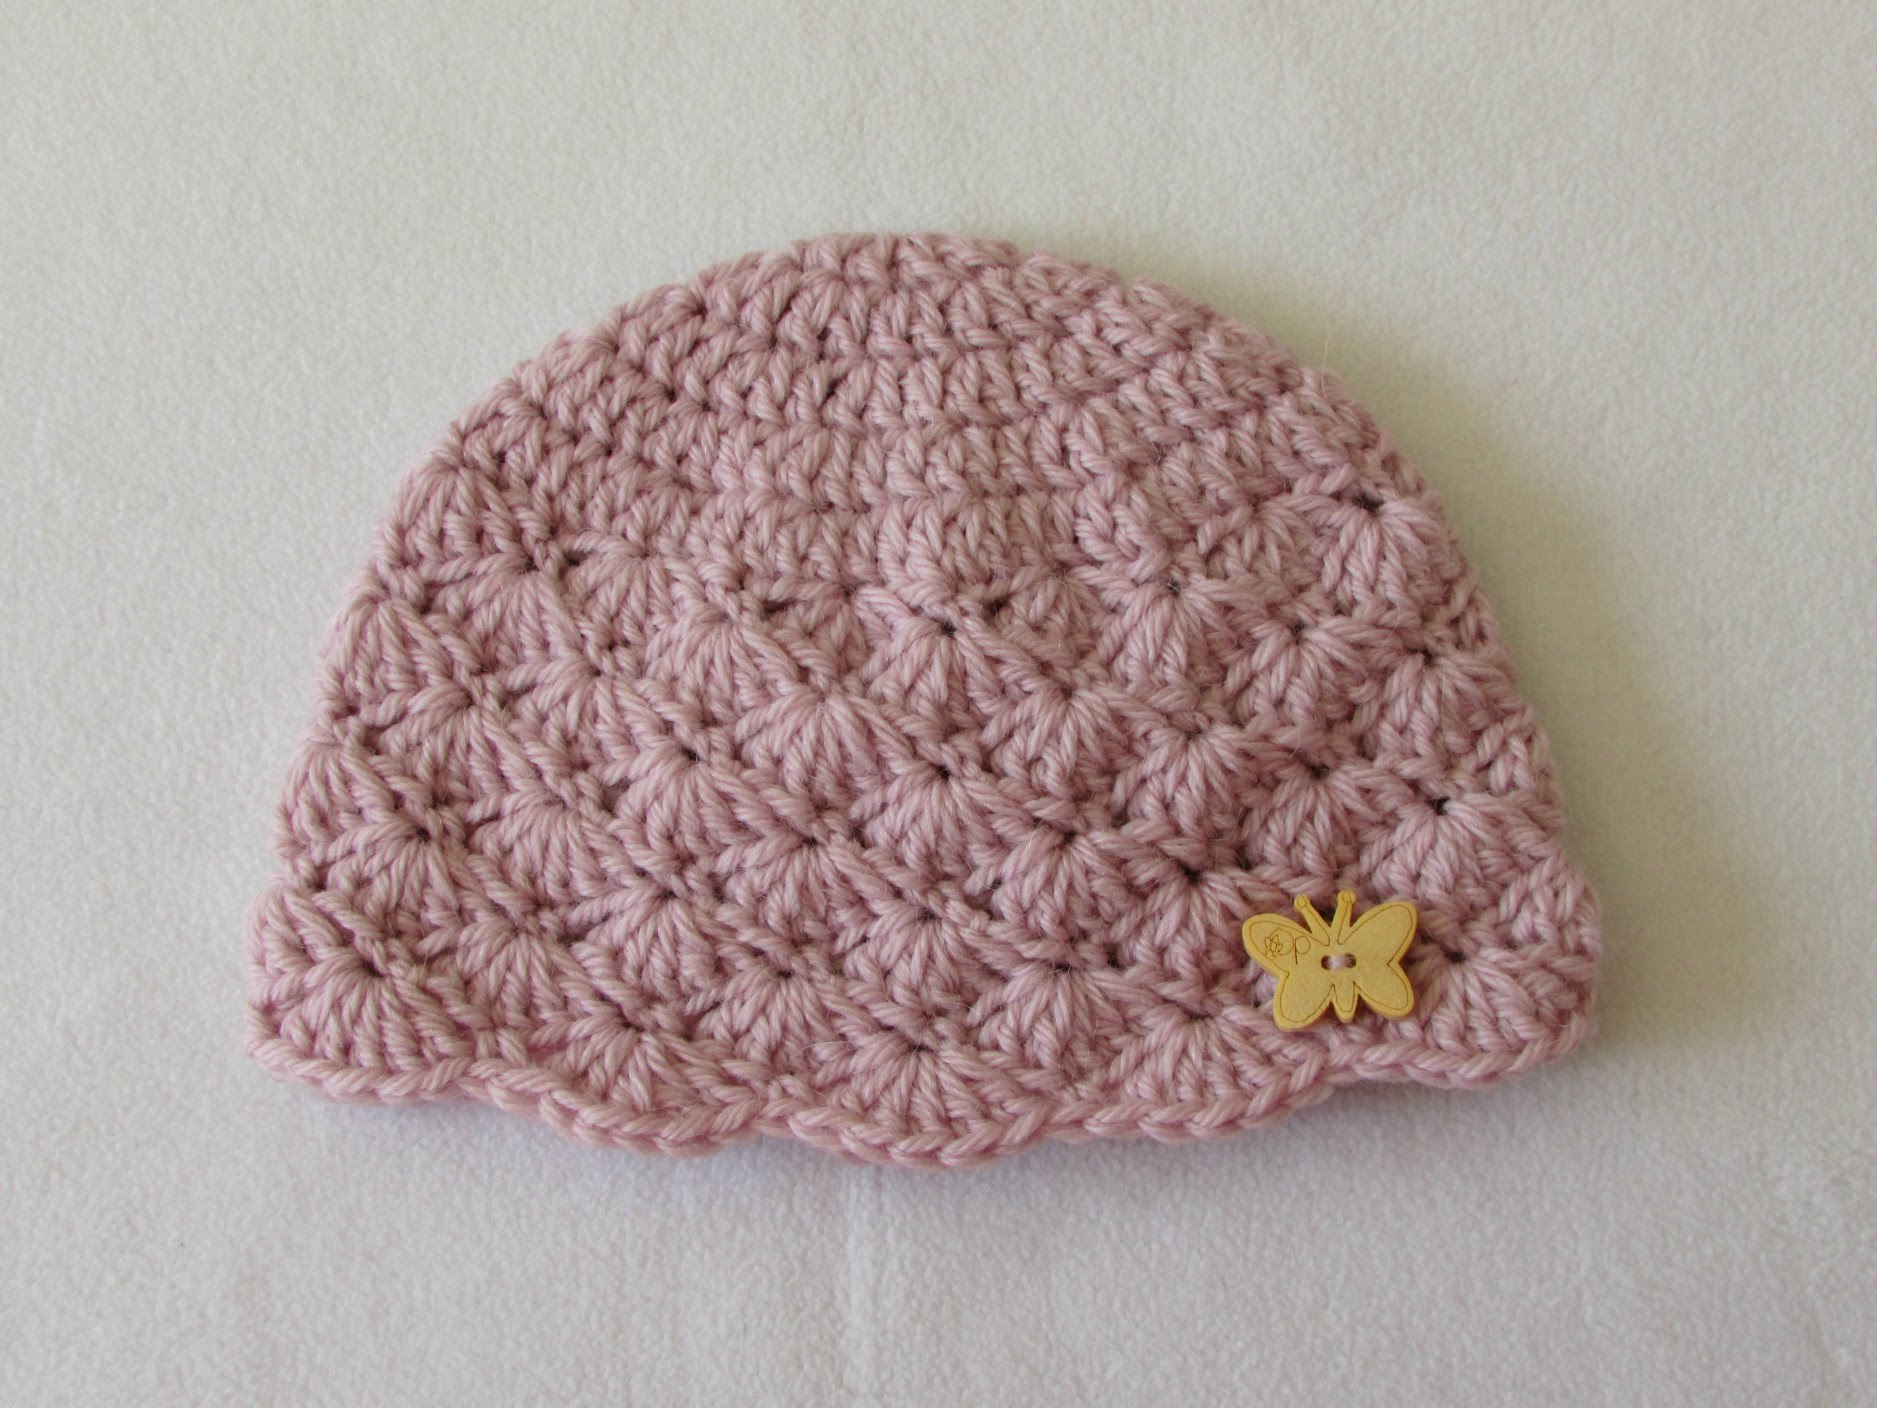 Crochet cap for babies how to crochet a cute baby girlu0027s hat for beginners - youtube FXQPFWH